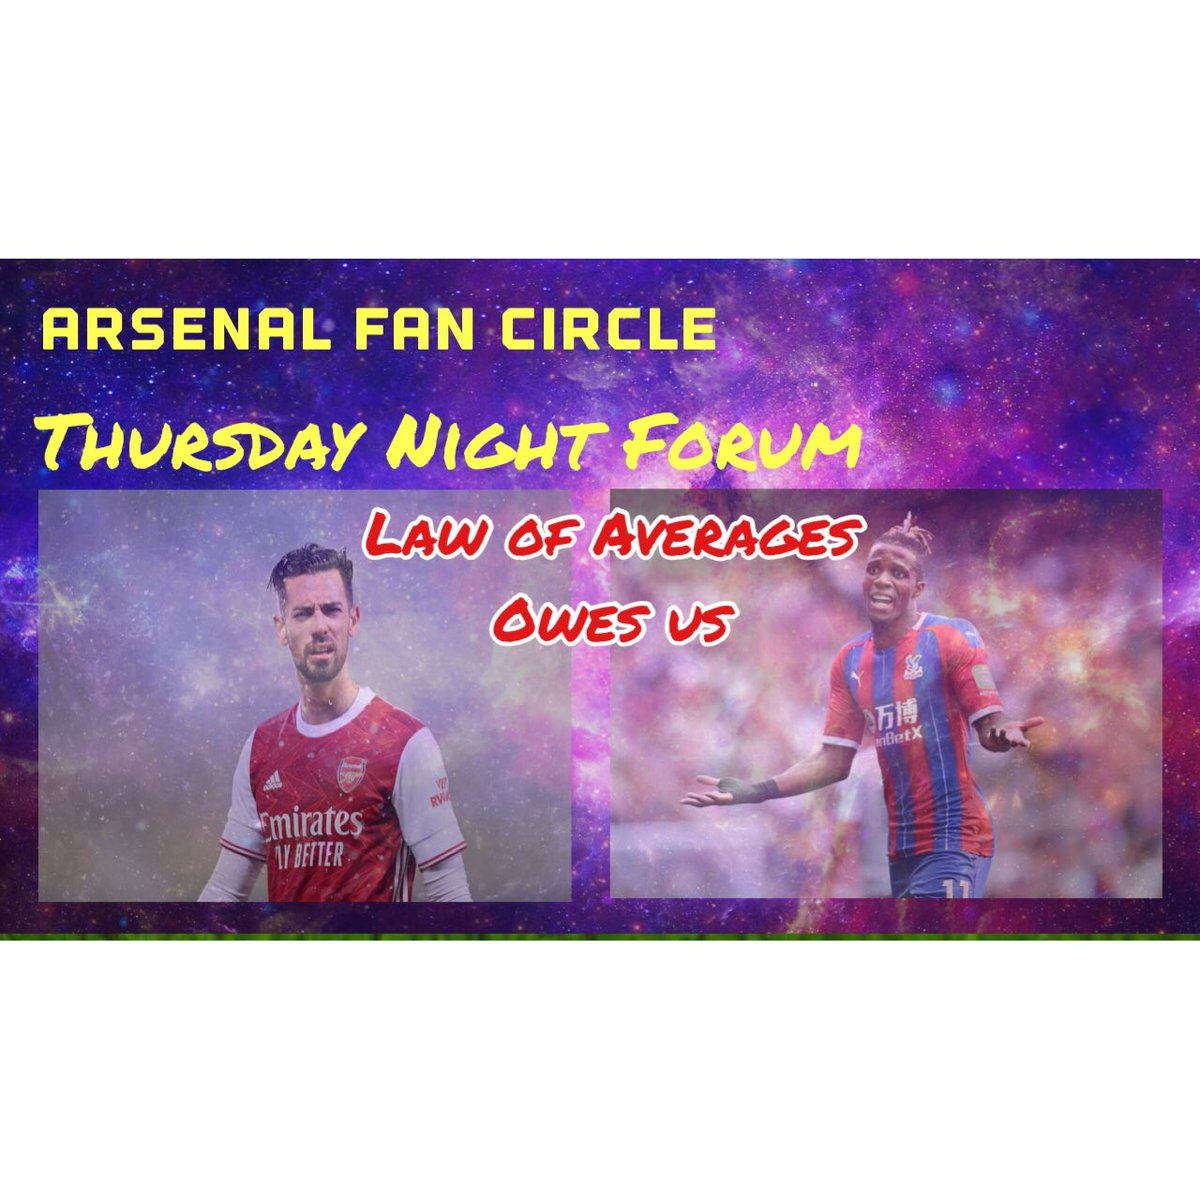 #arscry 0-0 draw but lots 2 talk about. We chatted about #arsenal Garlick & HP Sauce! Get caught up here ➡️  thanks Panel @DntWasteDaTweet @taoprophet420 @MrRobotTake2 @1980_greenwood Don't miss this one! Retweets & Share appreciated greatly #COYG #gooners